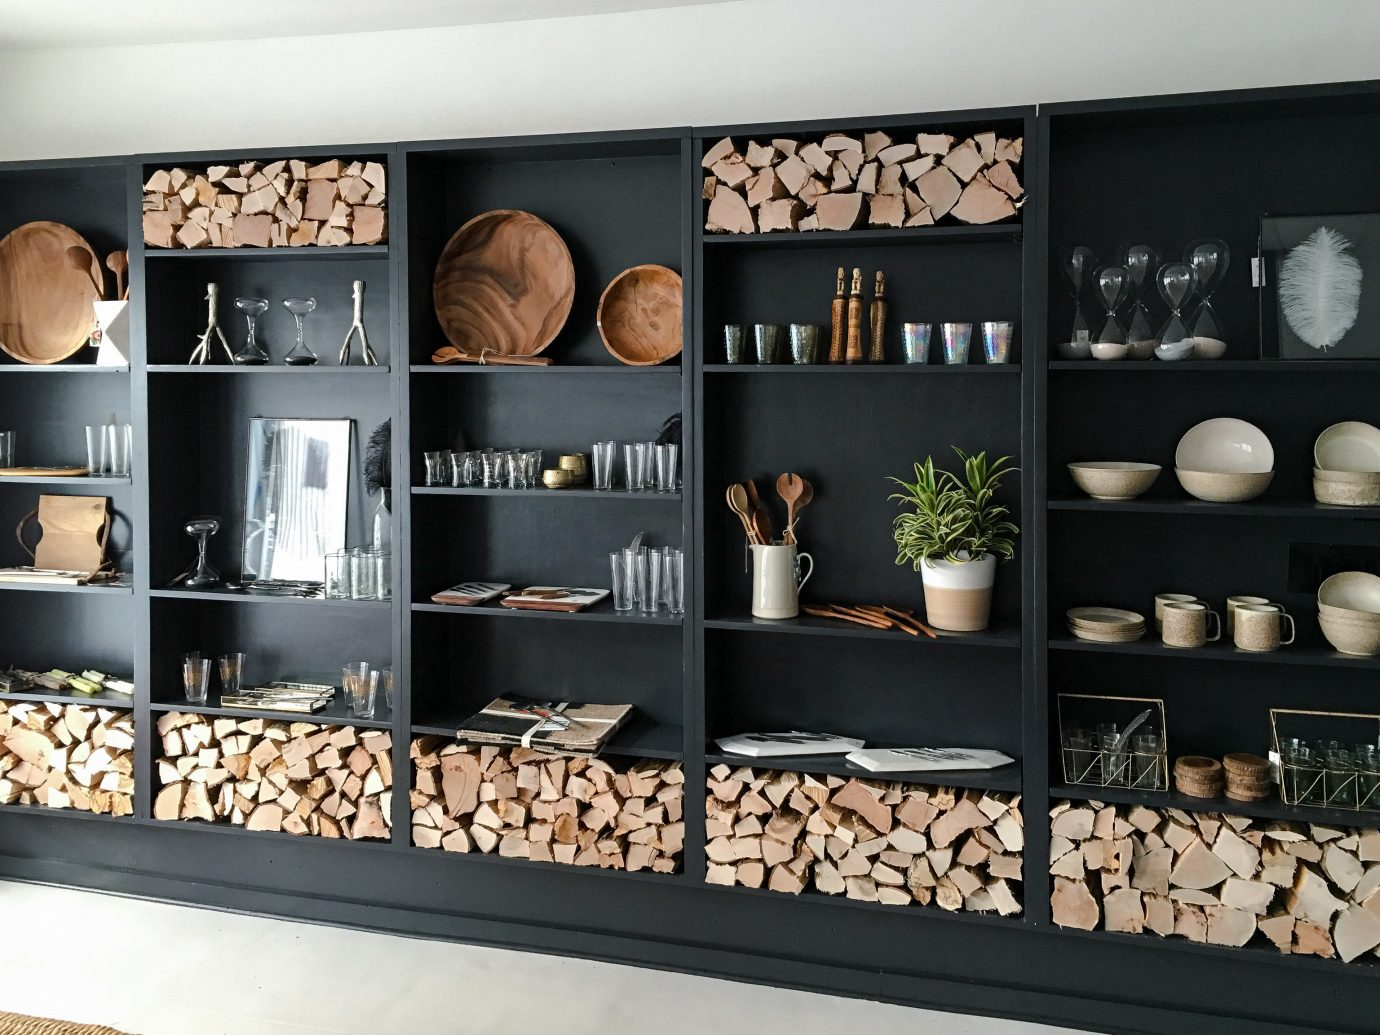 Mountains + Skiing Trip Ideas different shelving indoor furniture shelf interior design display case bookcase product several same entertainment center